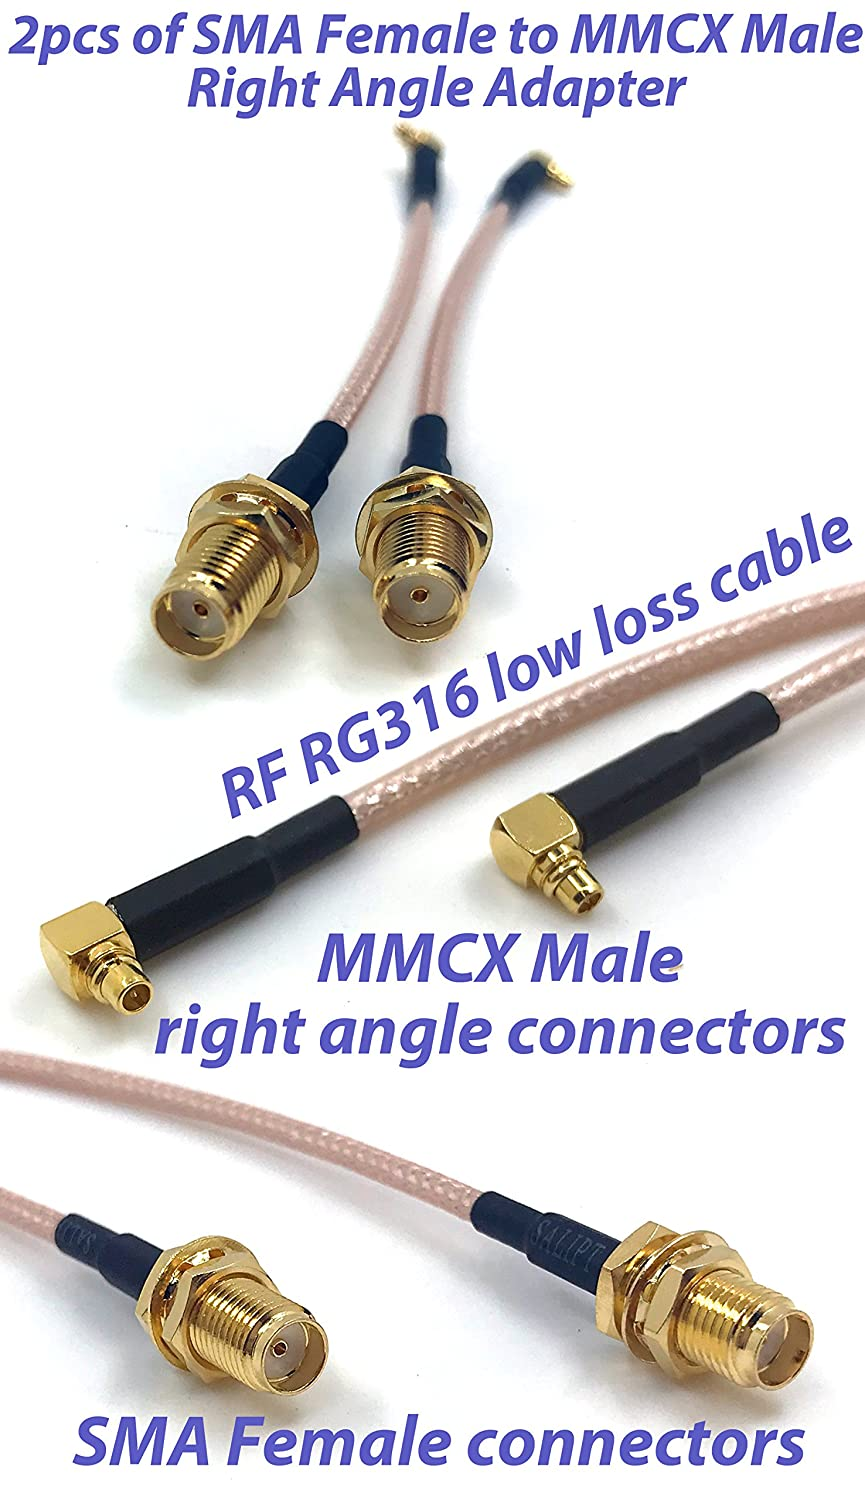 8 inch Pack of 2 RF RG316 Pigtail SMA Female Antenna Connector to MMCX Male Coaxial Cable Adapter Right Angle 20.3 cm